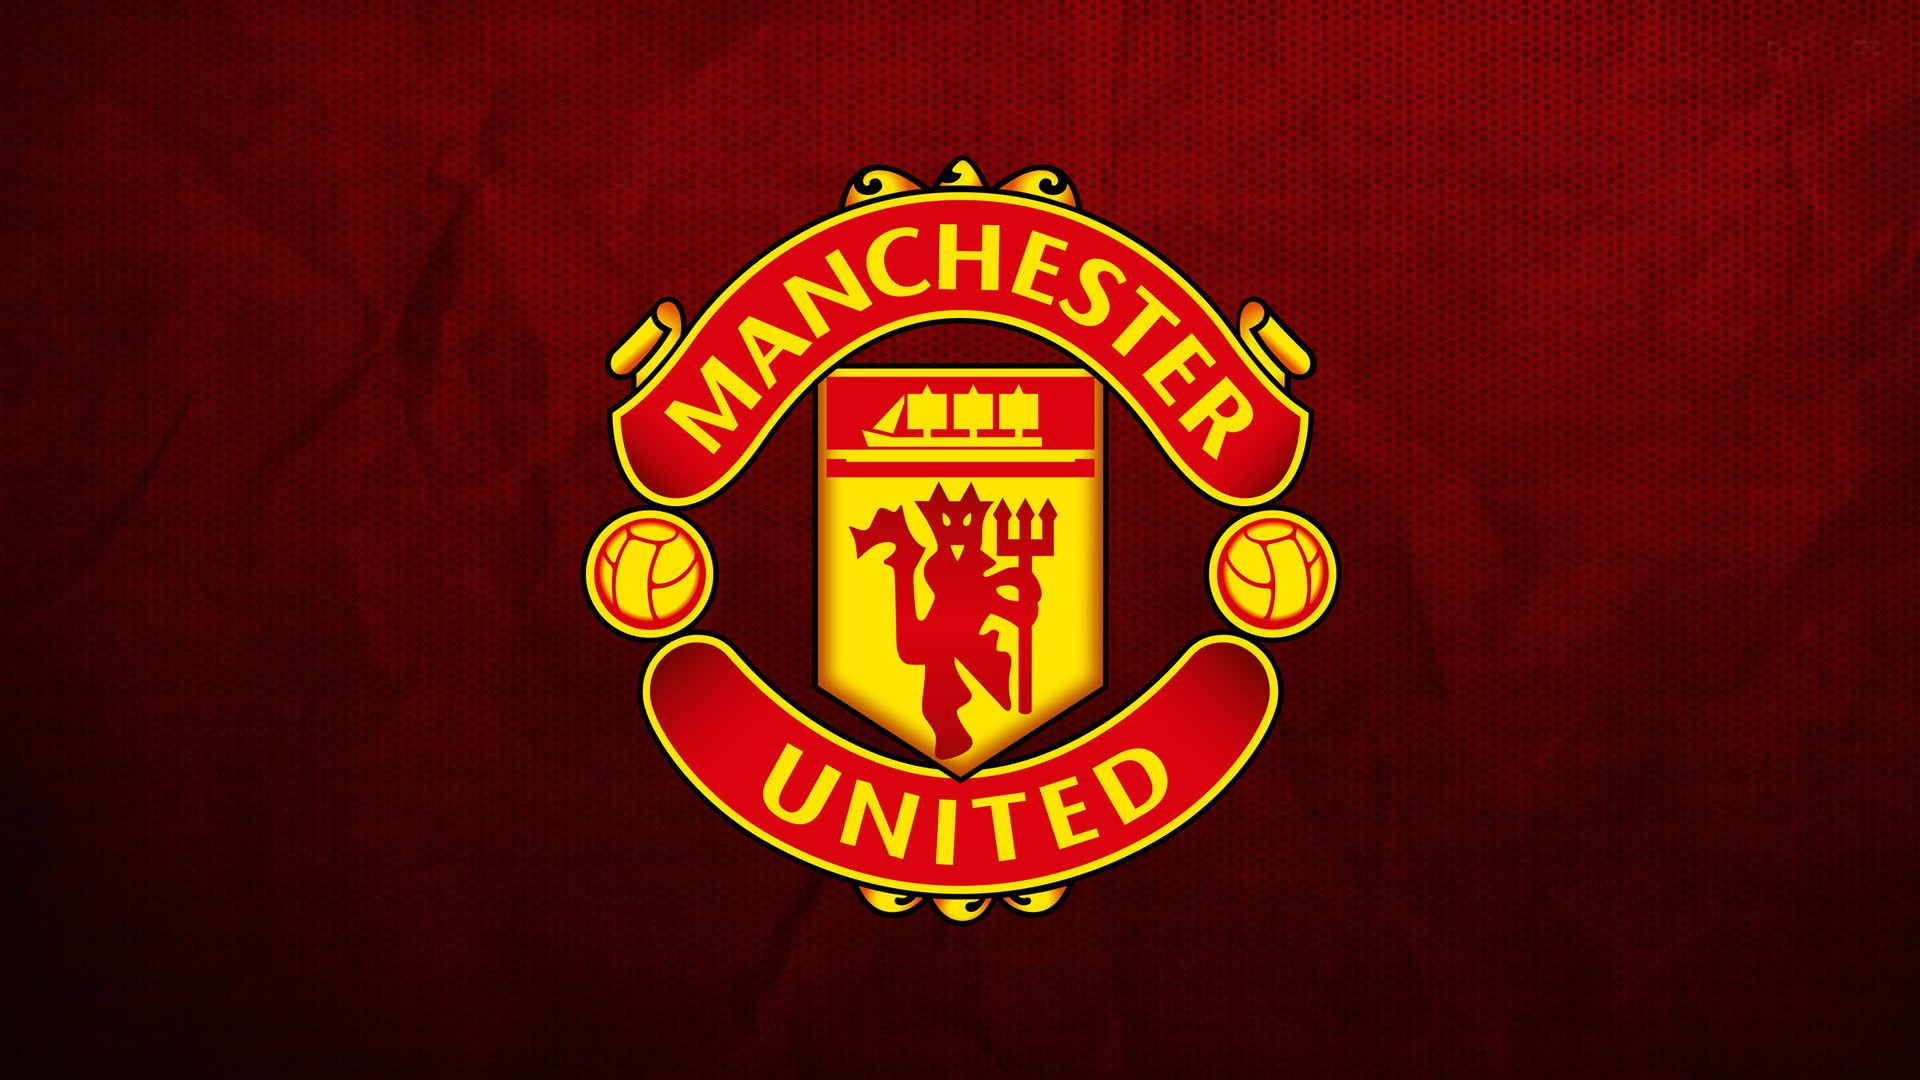 Manchester United Wallpaper 1920x1080 Manchester United 1920x1080